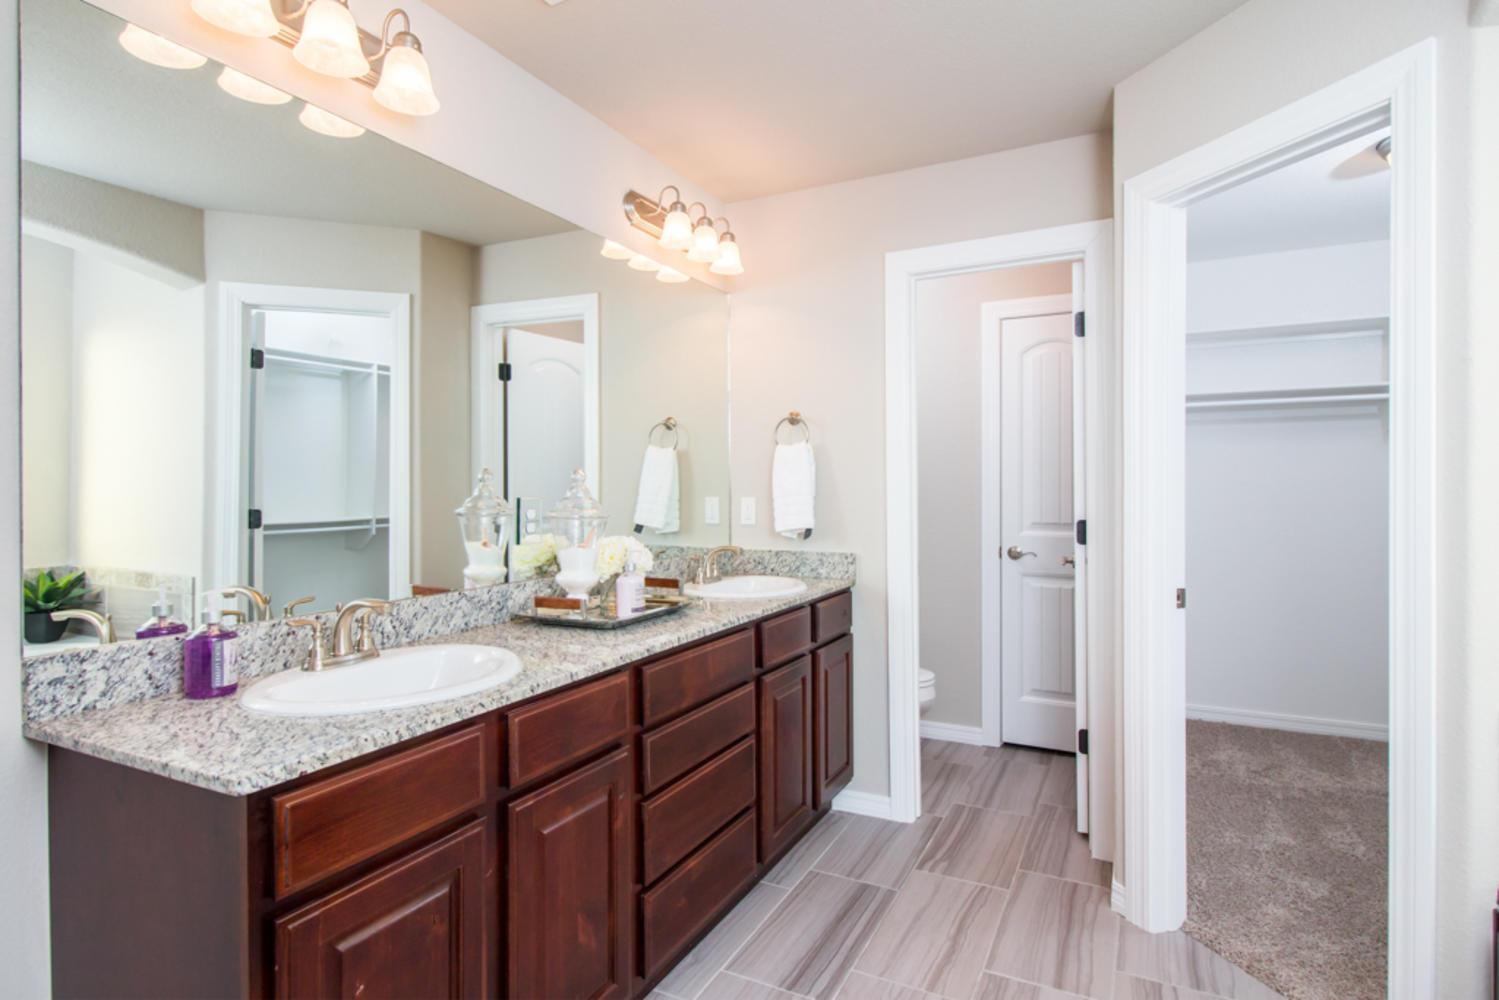 Bathroom featured in the 1787 By Riverwood Homes - Arkansas in Fayetteville, AR